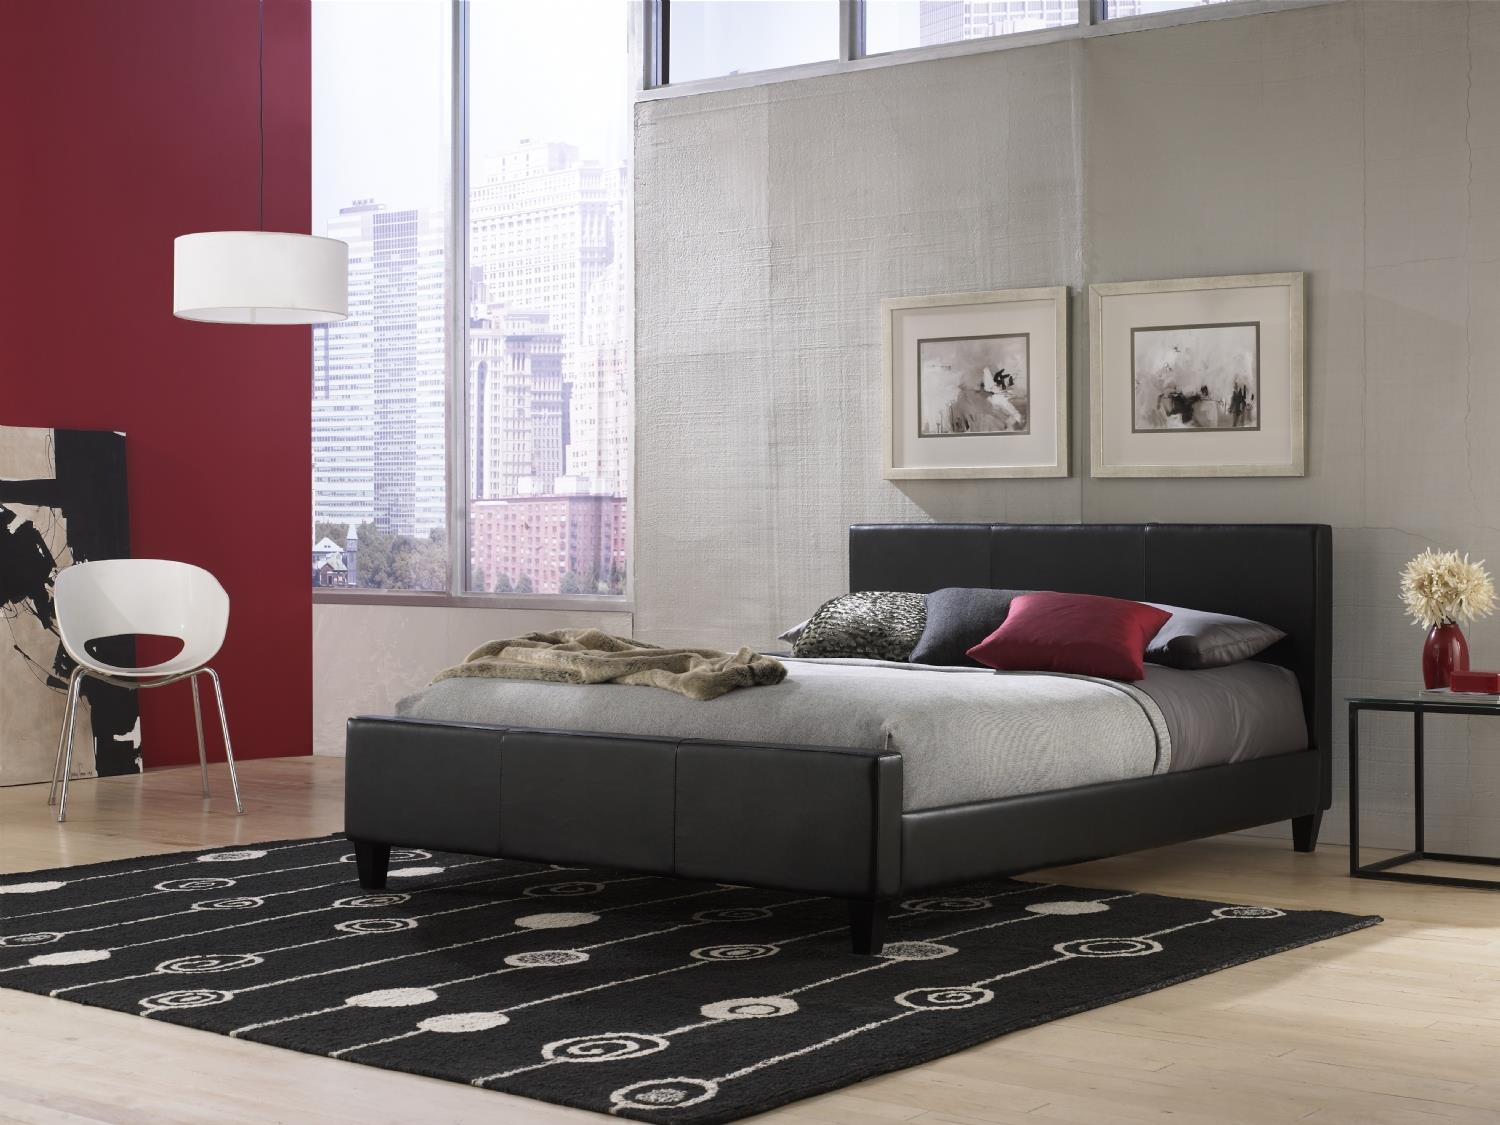 Fashion Bed Group Euro Queen Bed - Item Number: D83227149